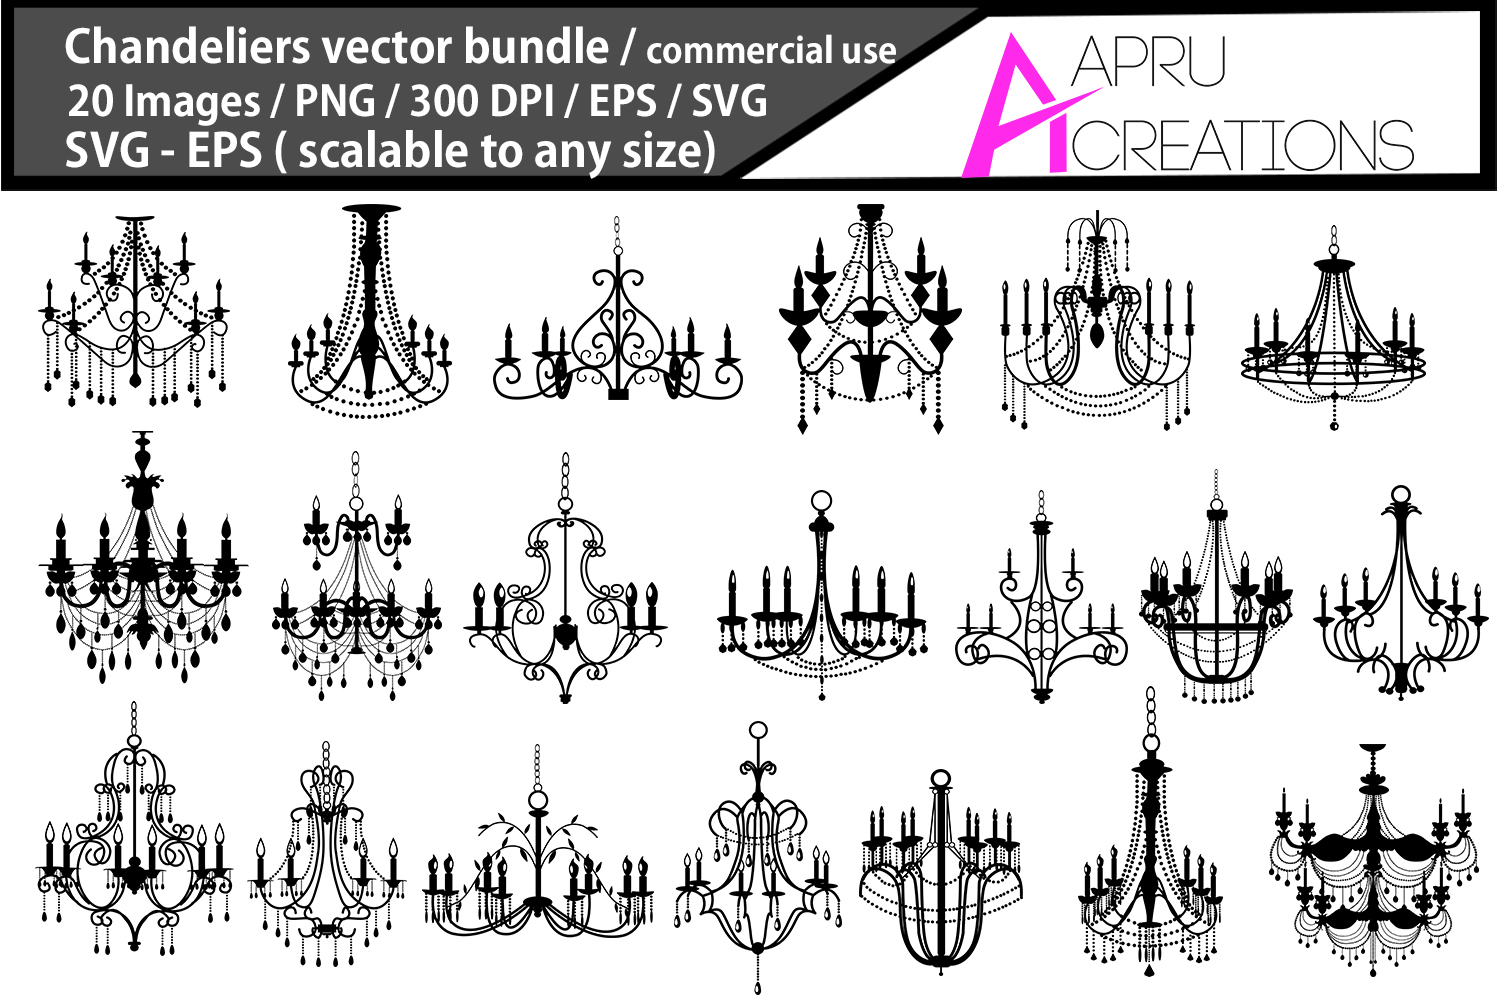 Download Free Chandeliers Silhouette Graphic By Aparnastjp Creative Fabrica for Cricut Explore, Silhouette and other cutting machines.